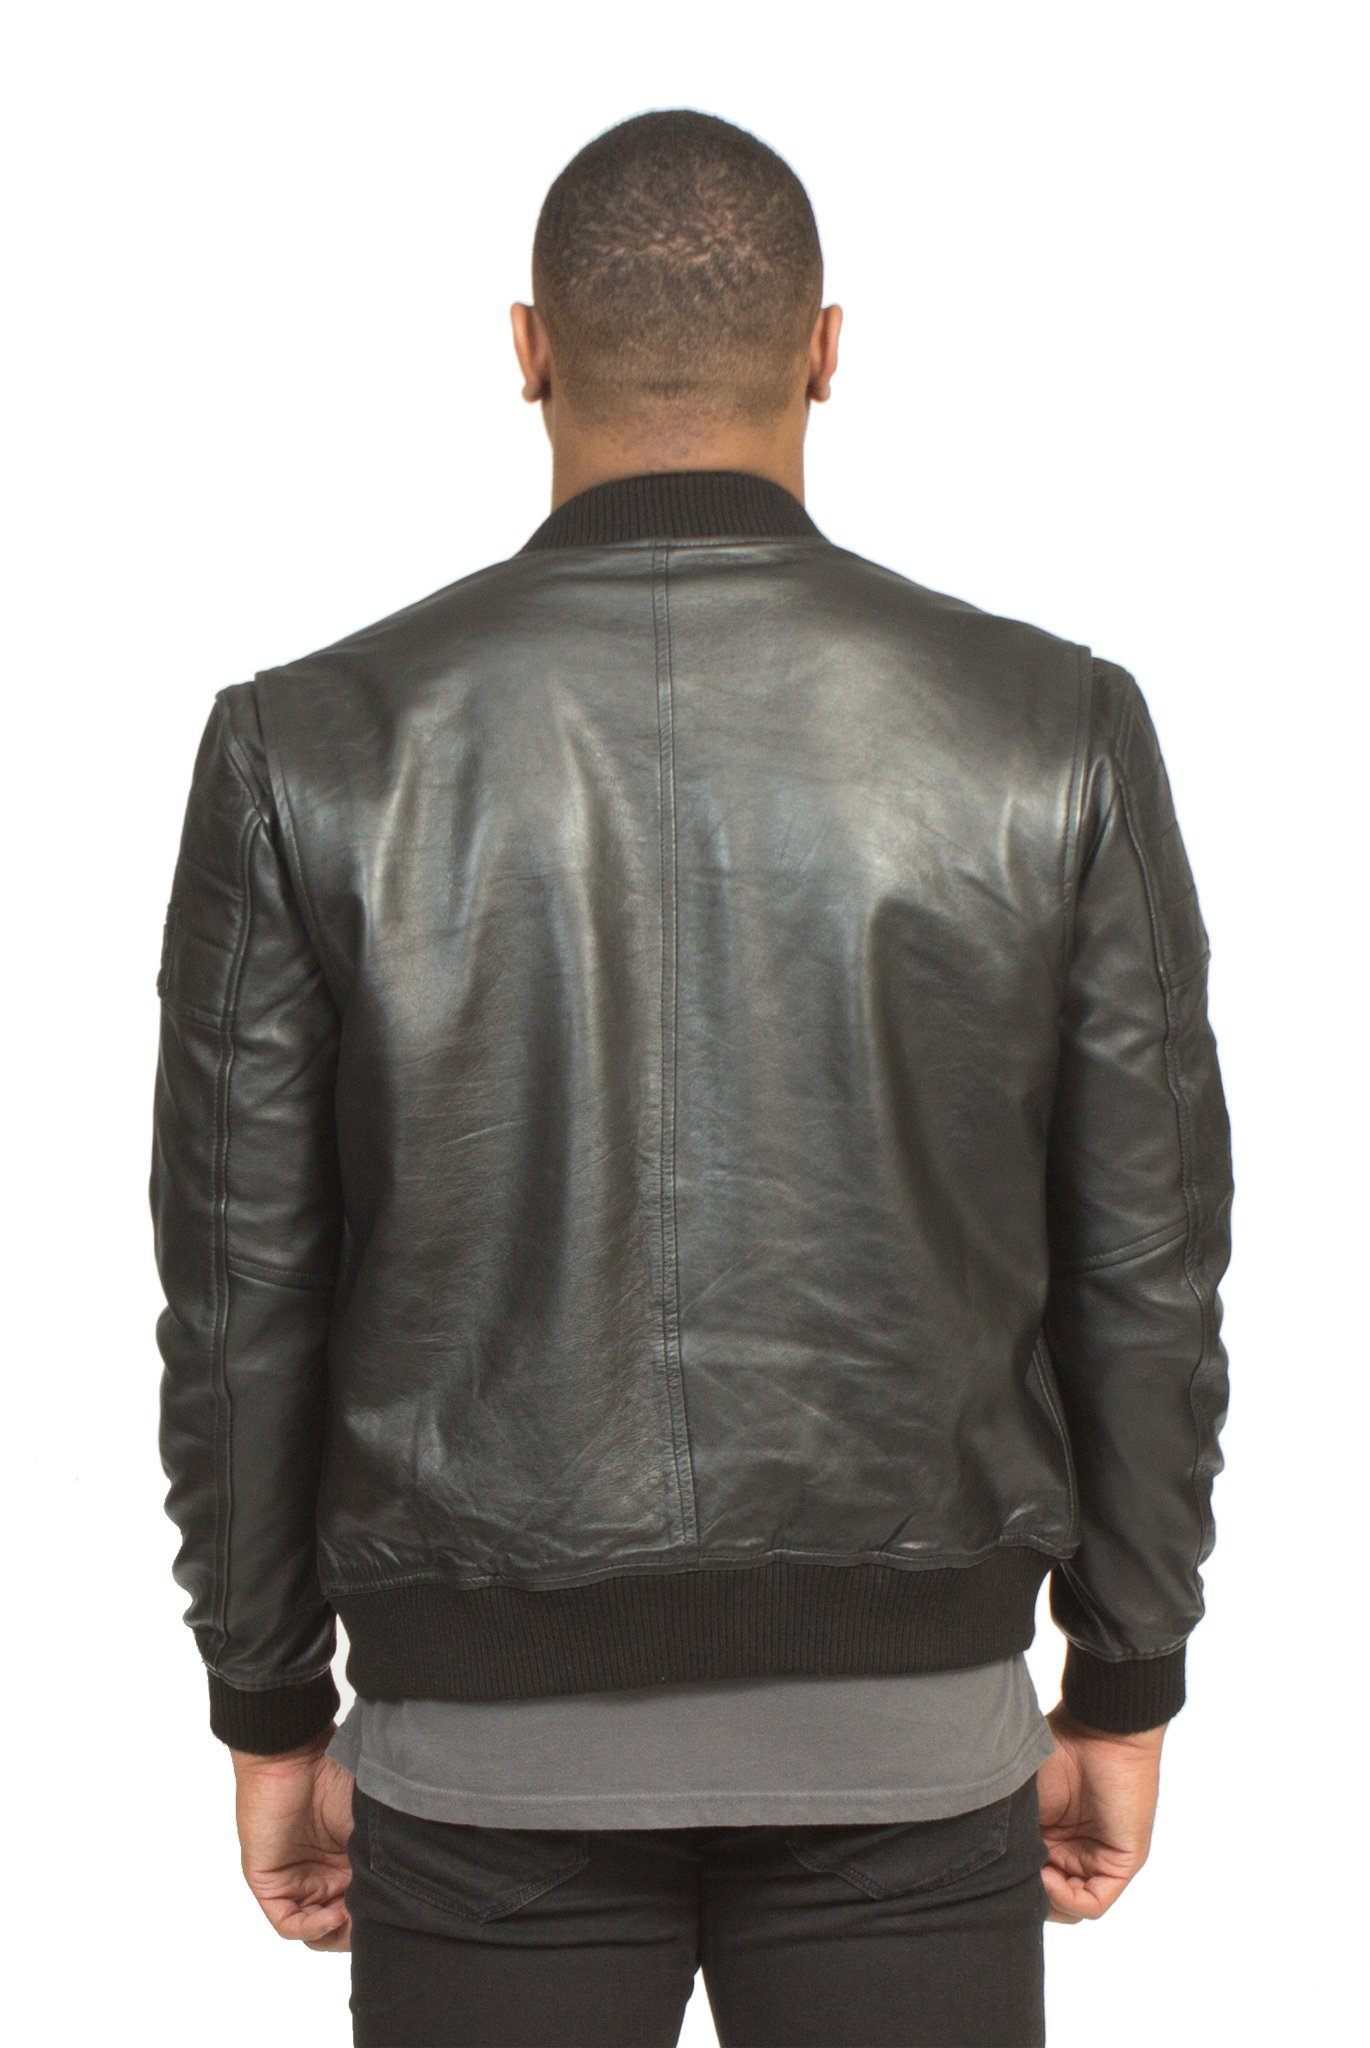 727209a40 Black Lambskin Leather Racer Jacket   Jackets and Outerwear – Poor ...